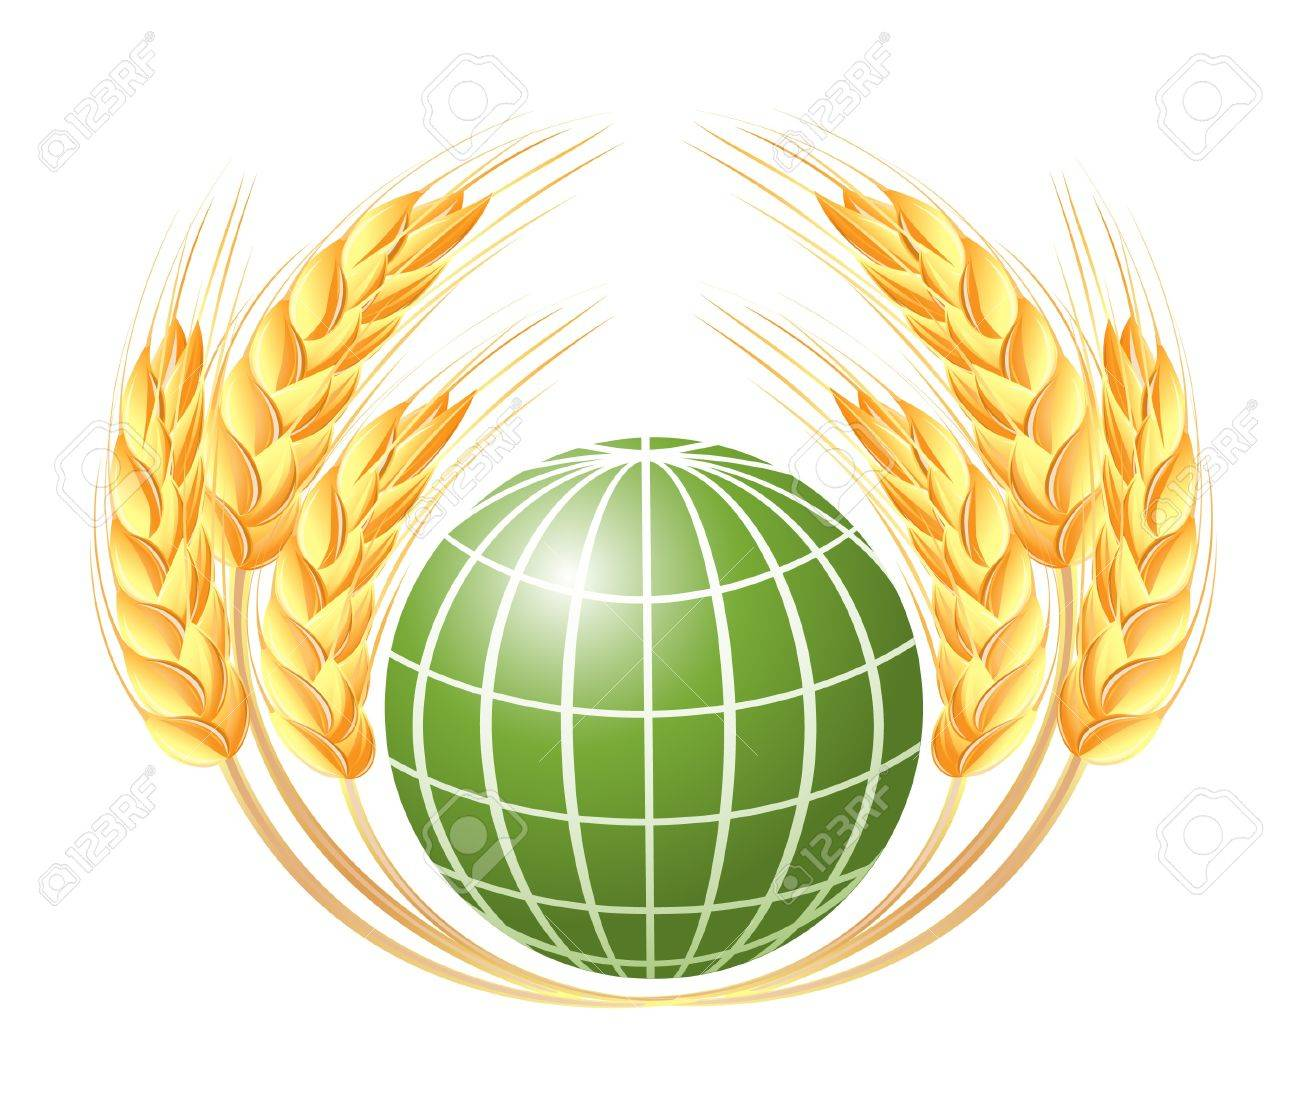 Abstract globe with wheat ears Stock Vector - 14008485